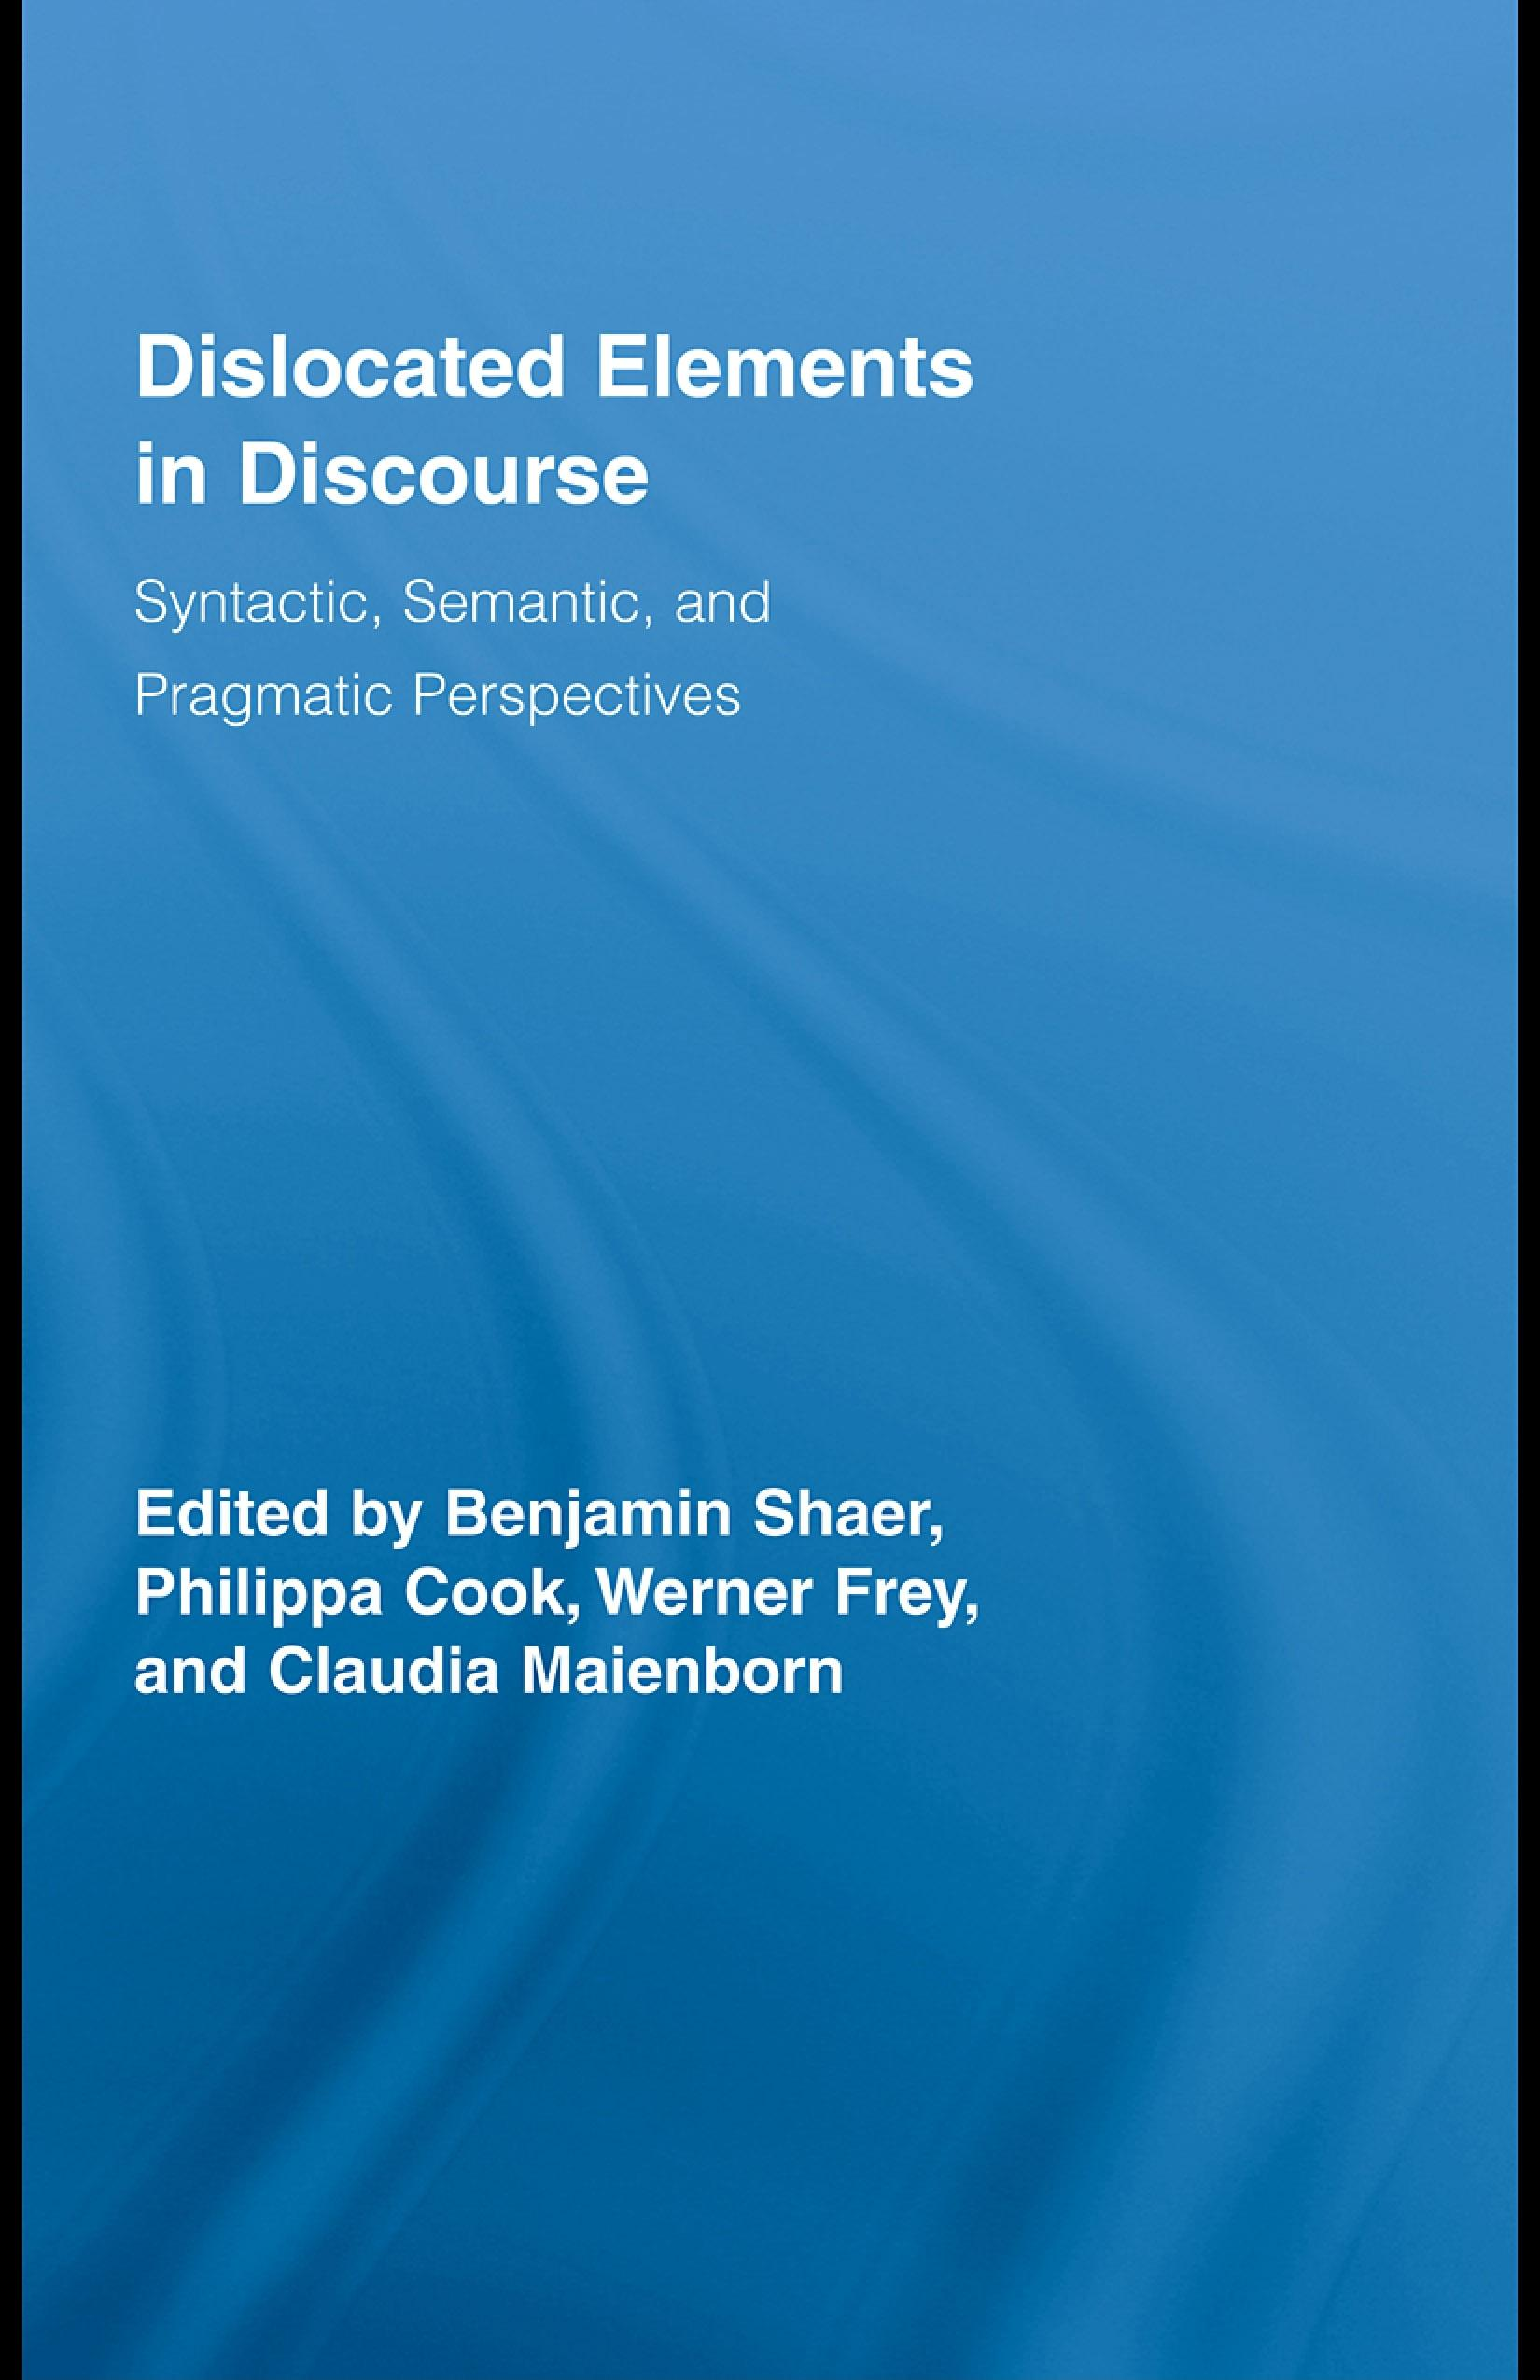 Dislocated Elements in Discourse: Syntactic, Semantic, and Pragmatic Perspectives EB9780203929247